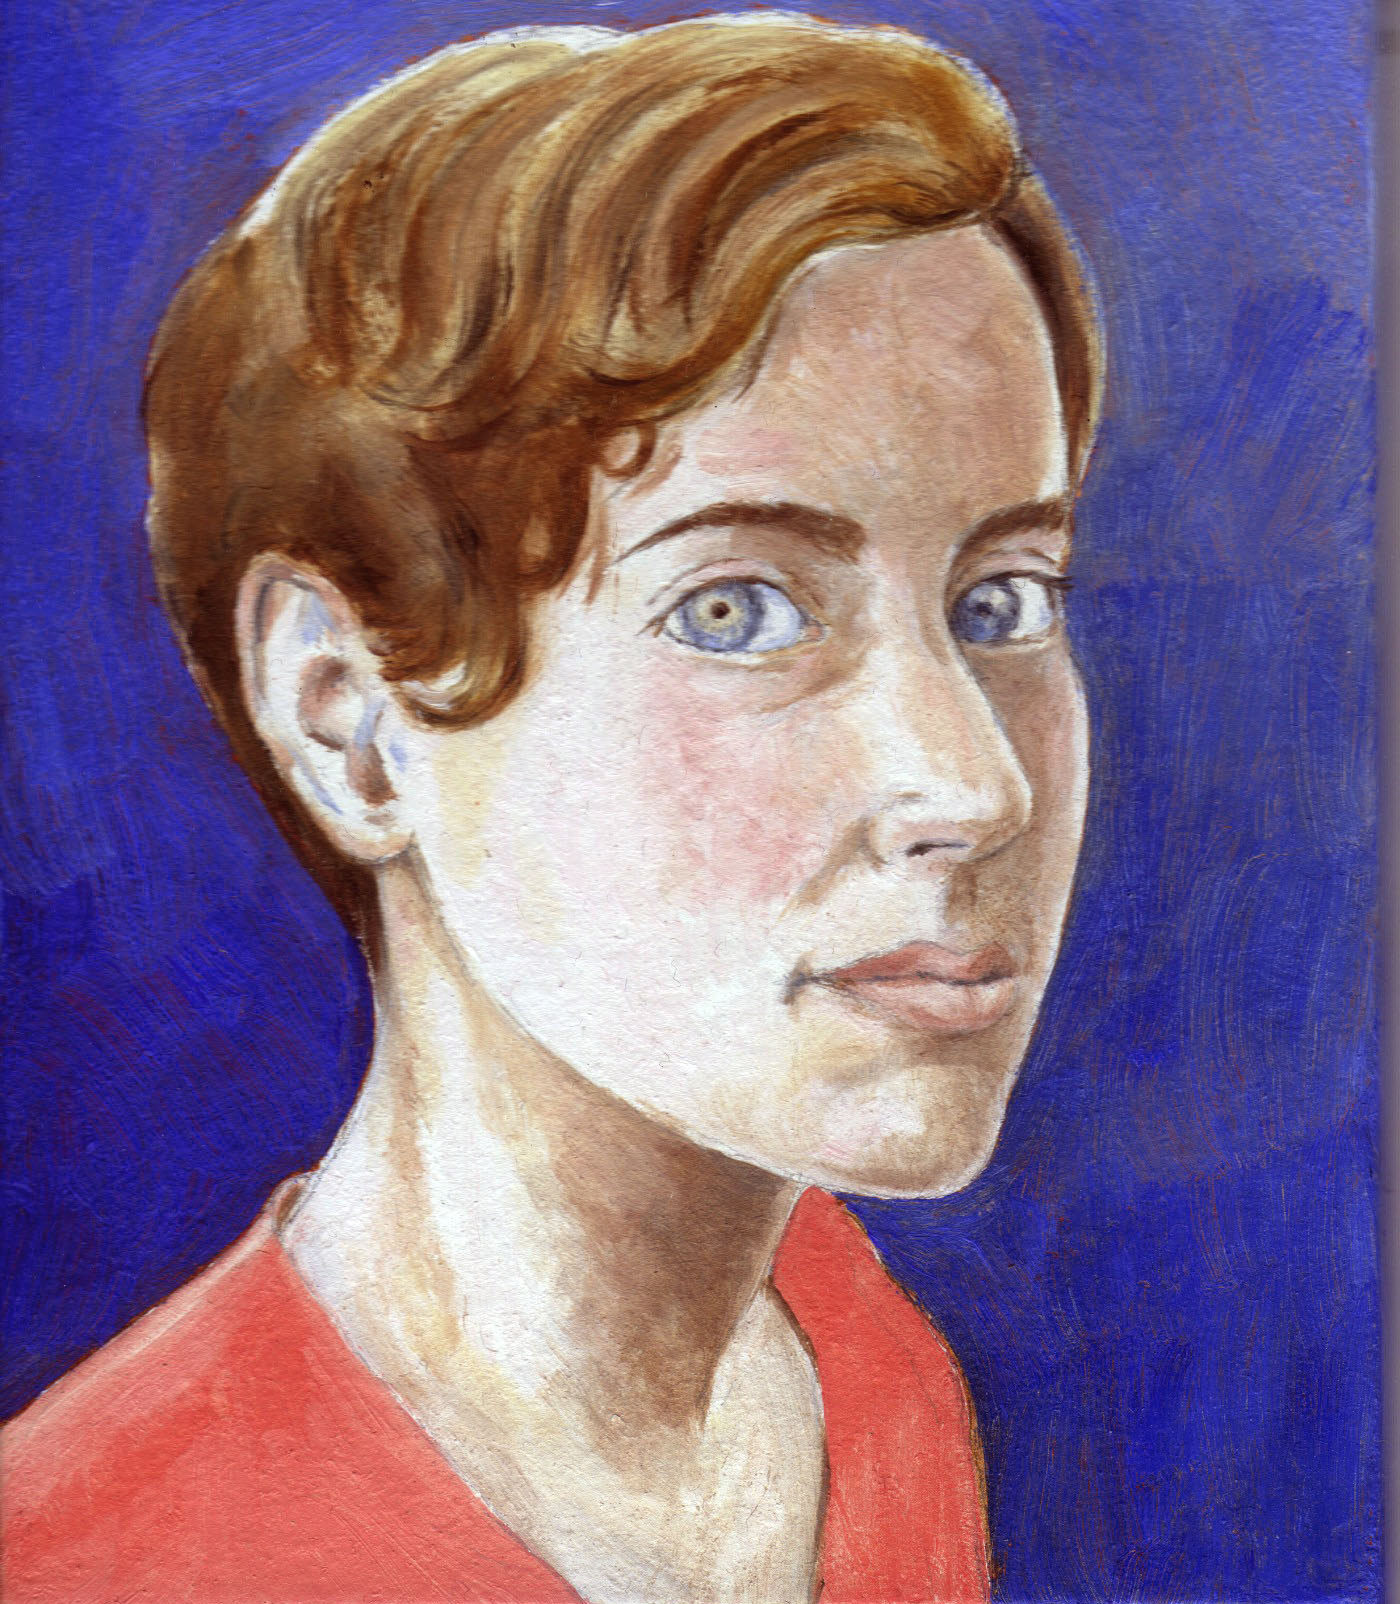 Painting of Maryam Mirzakhani ni